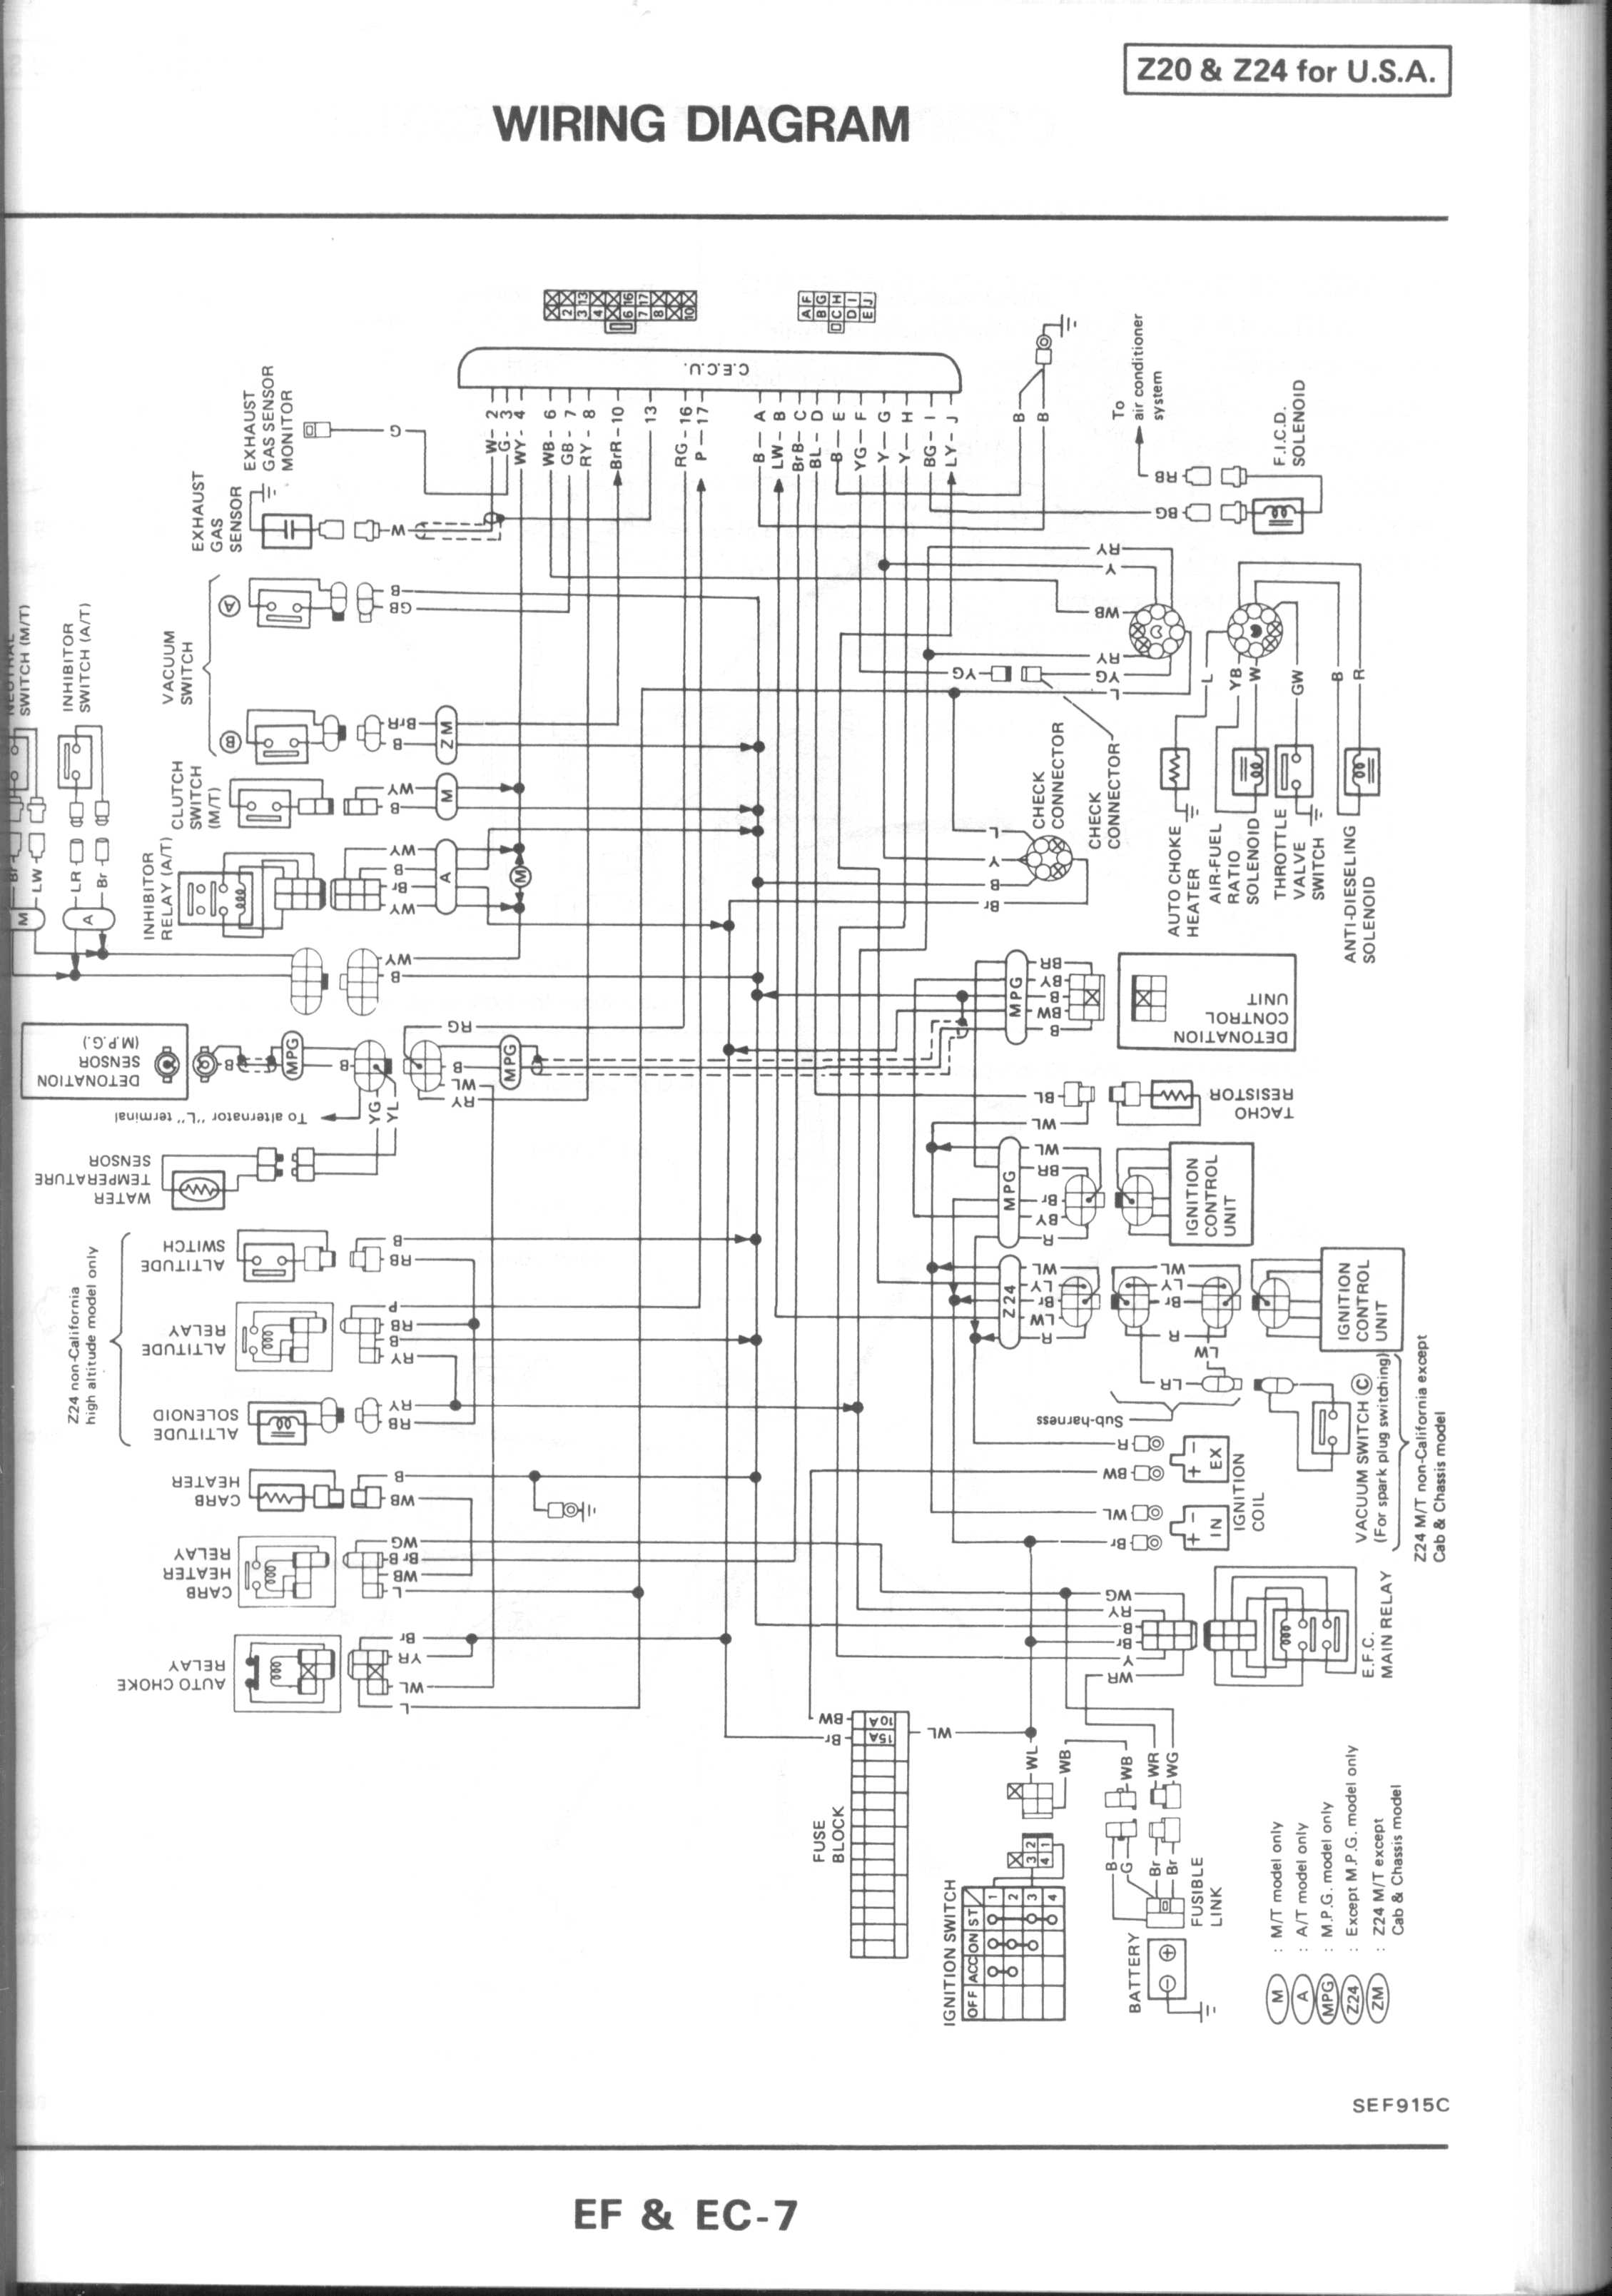 1991 300zx Ecu Wiring Diagram - Wiring Diagram Data on 280z wiring harness diagram, f-22 diagram, bmw wiring harness diagram, camaro wiring harness diagram, subaru wiring harness diagram, 300c wiring harness diagram, mitsubishi wiring harness diagram, integra wiring harness diagram, toyota wiring harness diagram, miata wiring harness diagram, nissan 300zx wiring diagram, truck wiring harness diagram, 300zx speakers, mustang wiring harness diagram, 300zx stereo wiring diagram, s13 wiring harness diagram, 300zx engine swap, 3000gt wiring harness diagram, 1990 honda accord ex diagram, running wiring harness diagram,